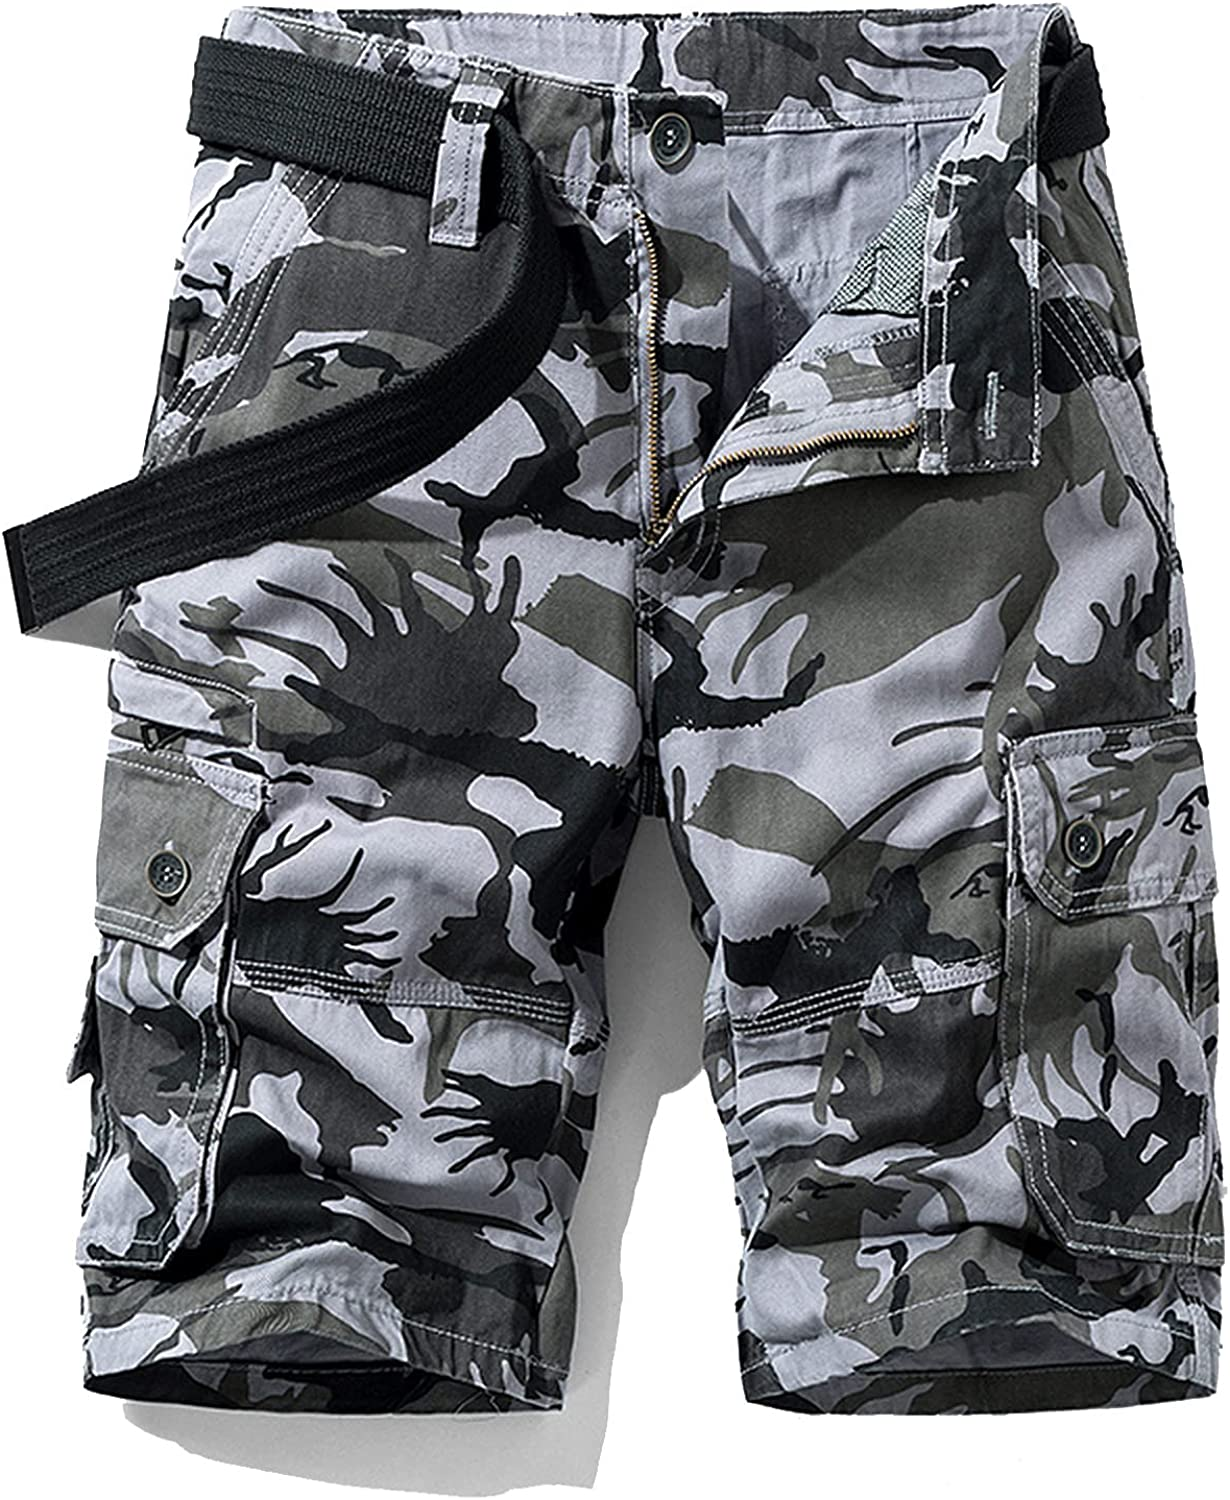 B dressy New Summer Cargo Shorts Men Camouflage Cotton Khaki Loose Casual Outwear Overalls-Gray-3-38